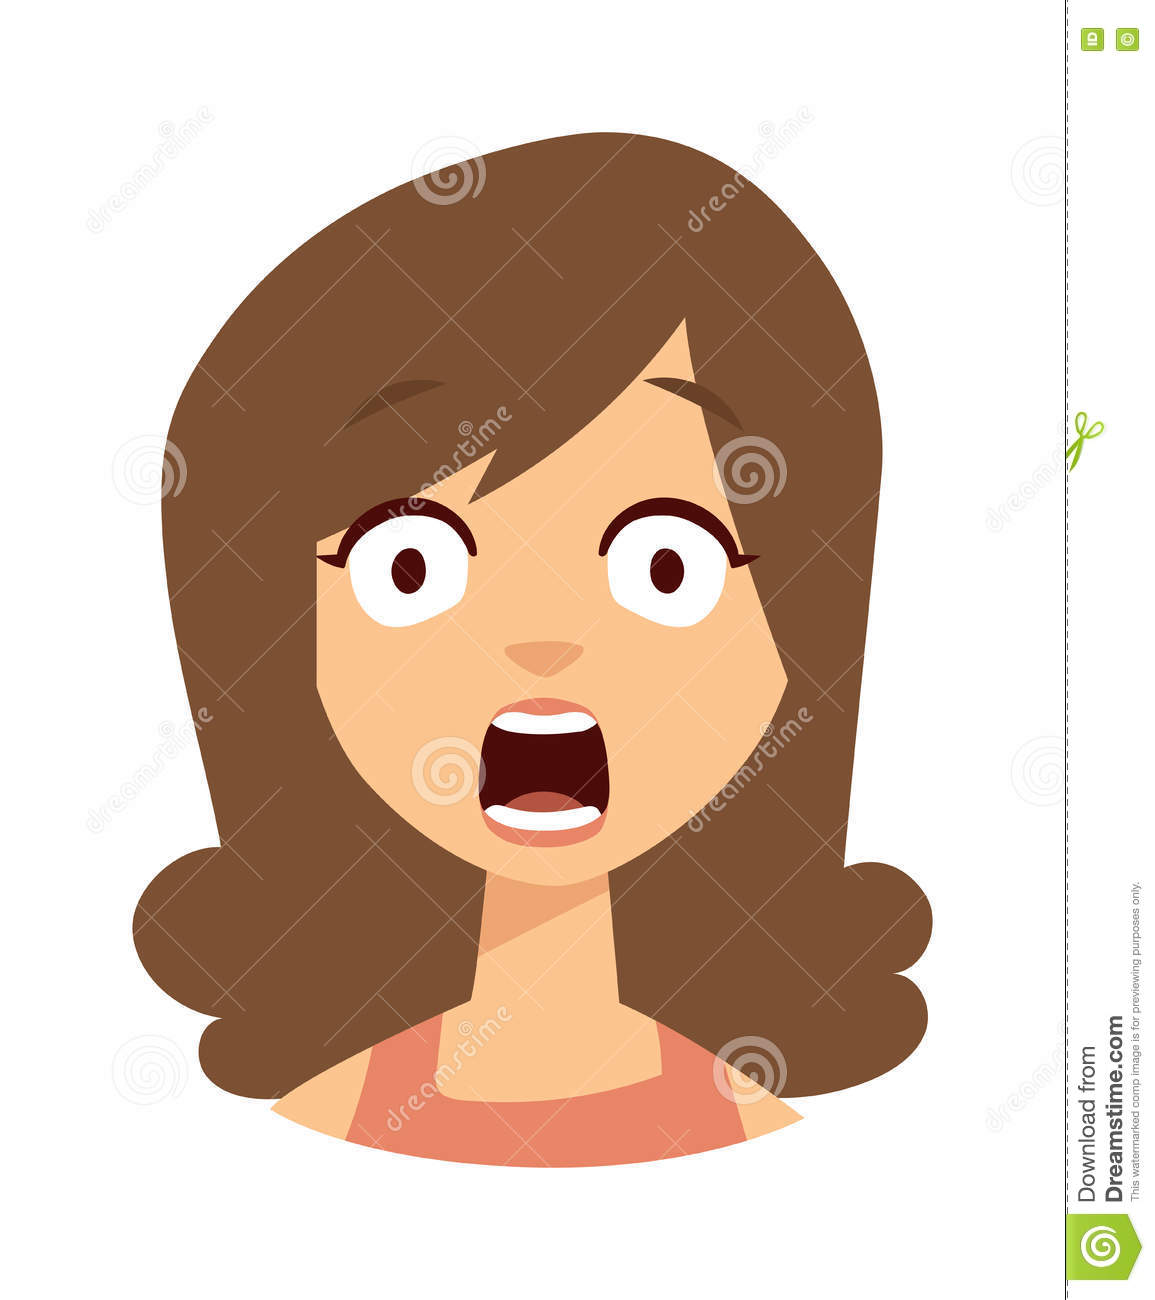 02 besides Single Gold Star Cartoon With Depressed Look On Face Emoji further Monster Mouth Clipart in addition Cartoon lipstick besides Cracking Up Laughing Clipart. on mouth clip art